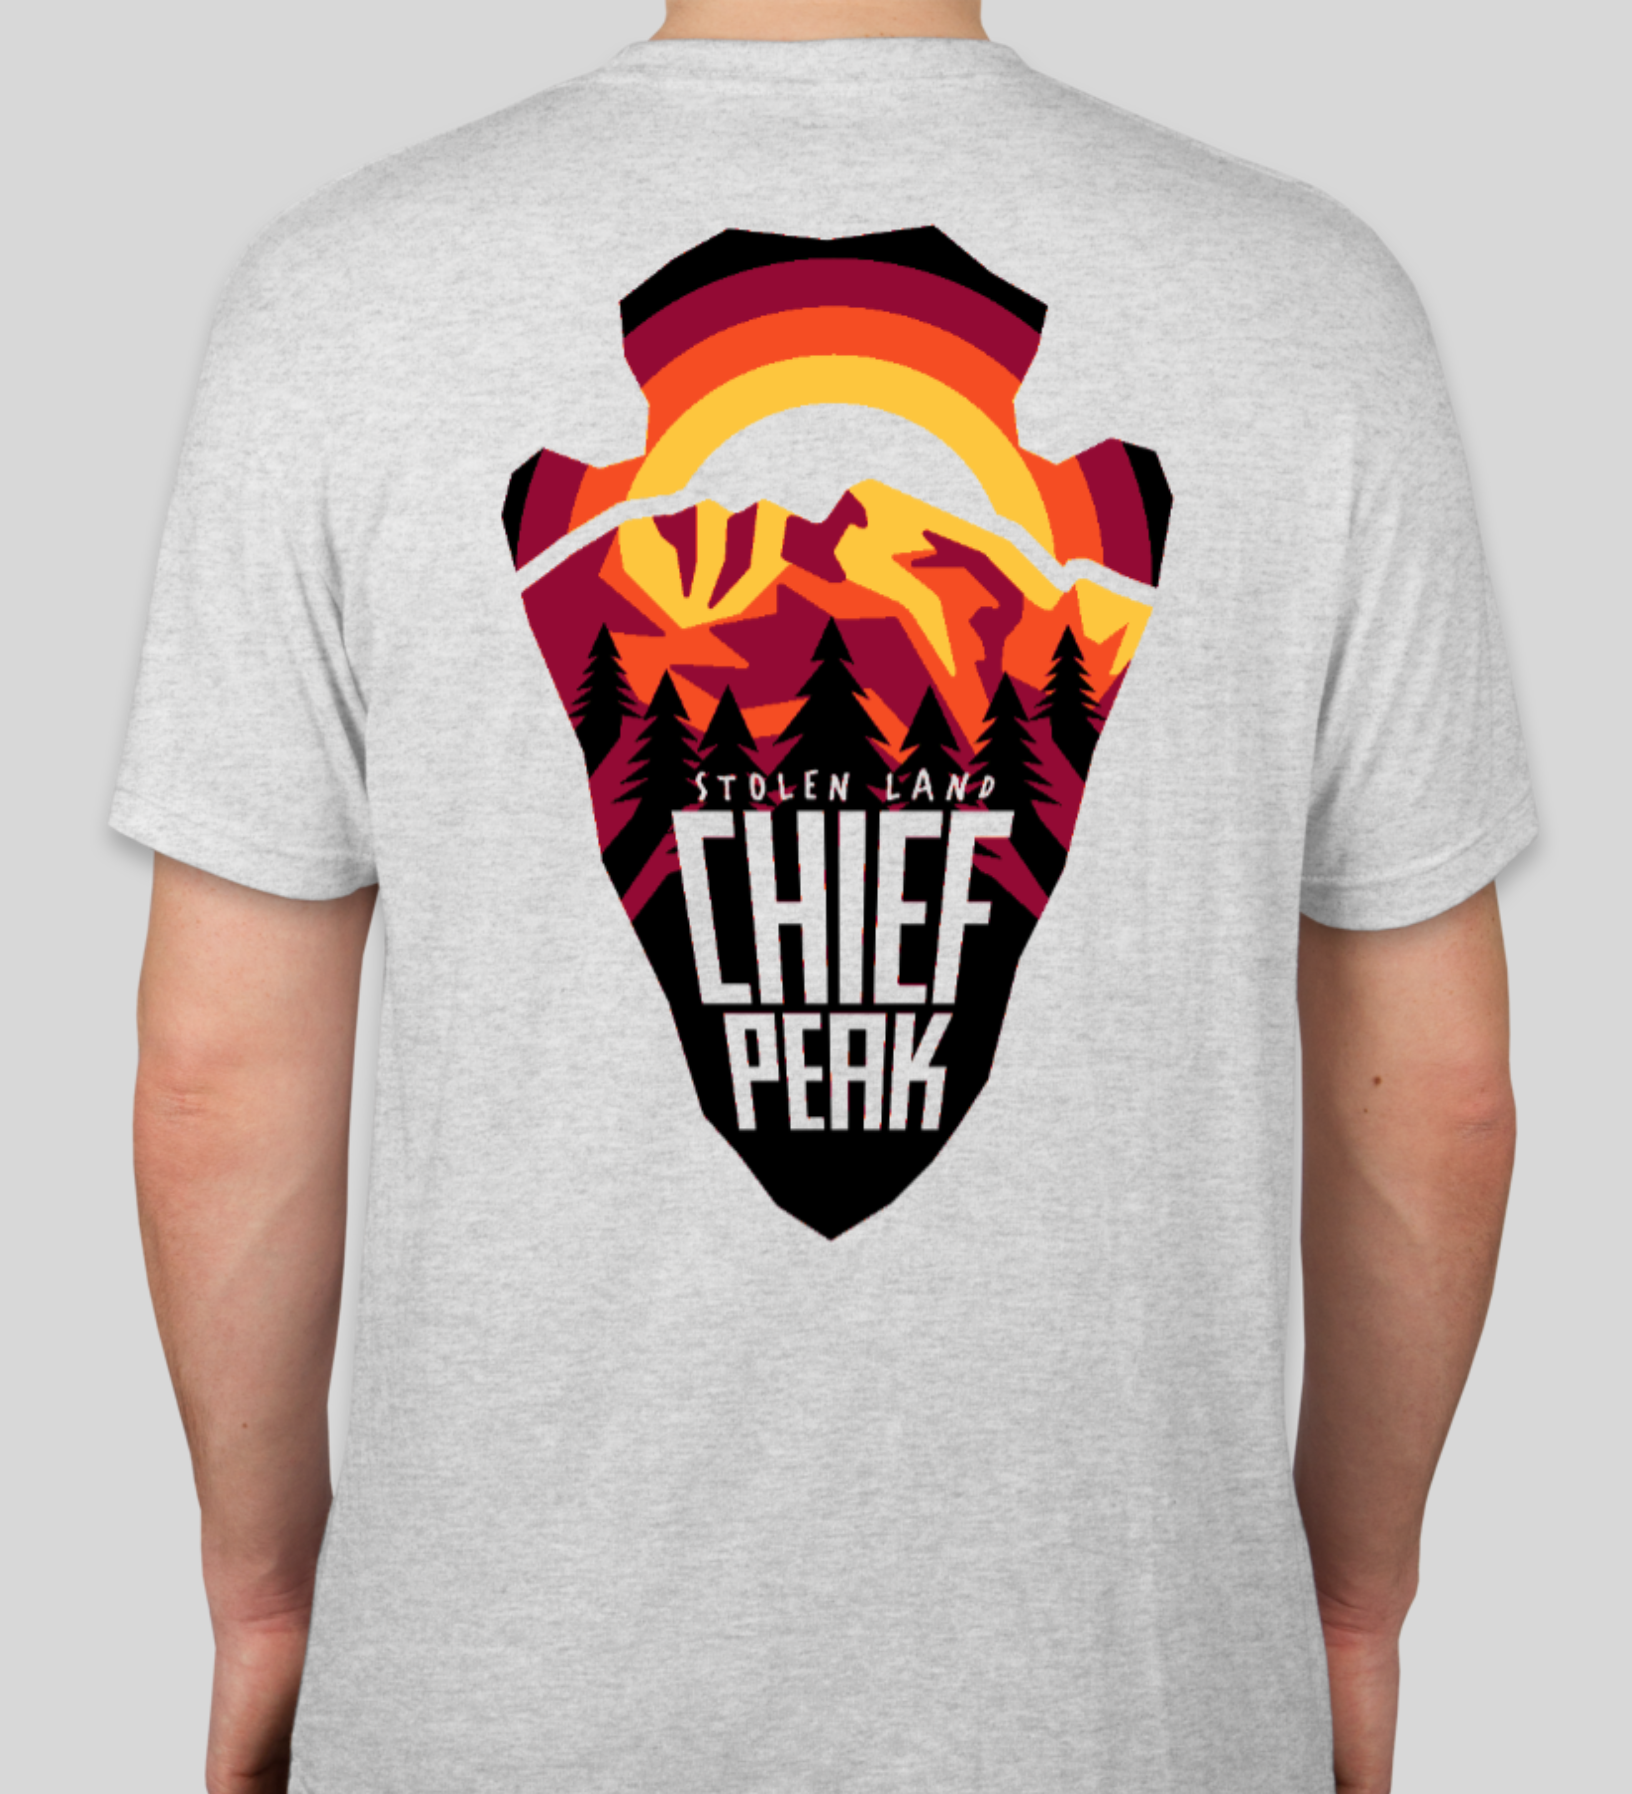 Martin Sosa Design Chief Peak Tshirt.png